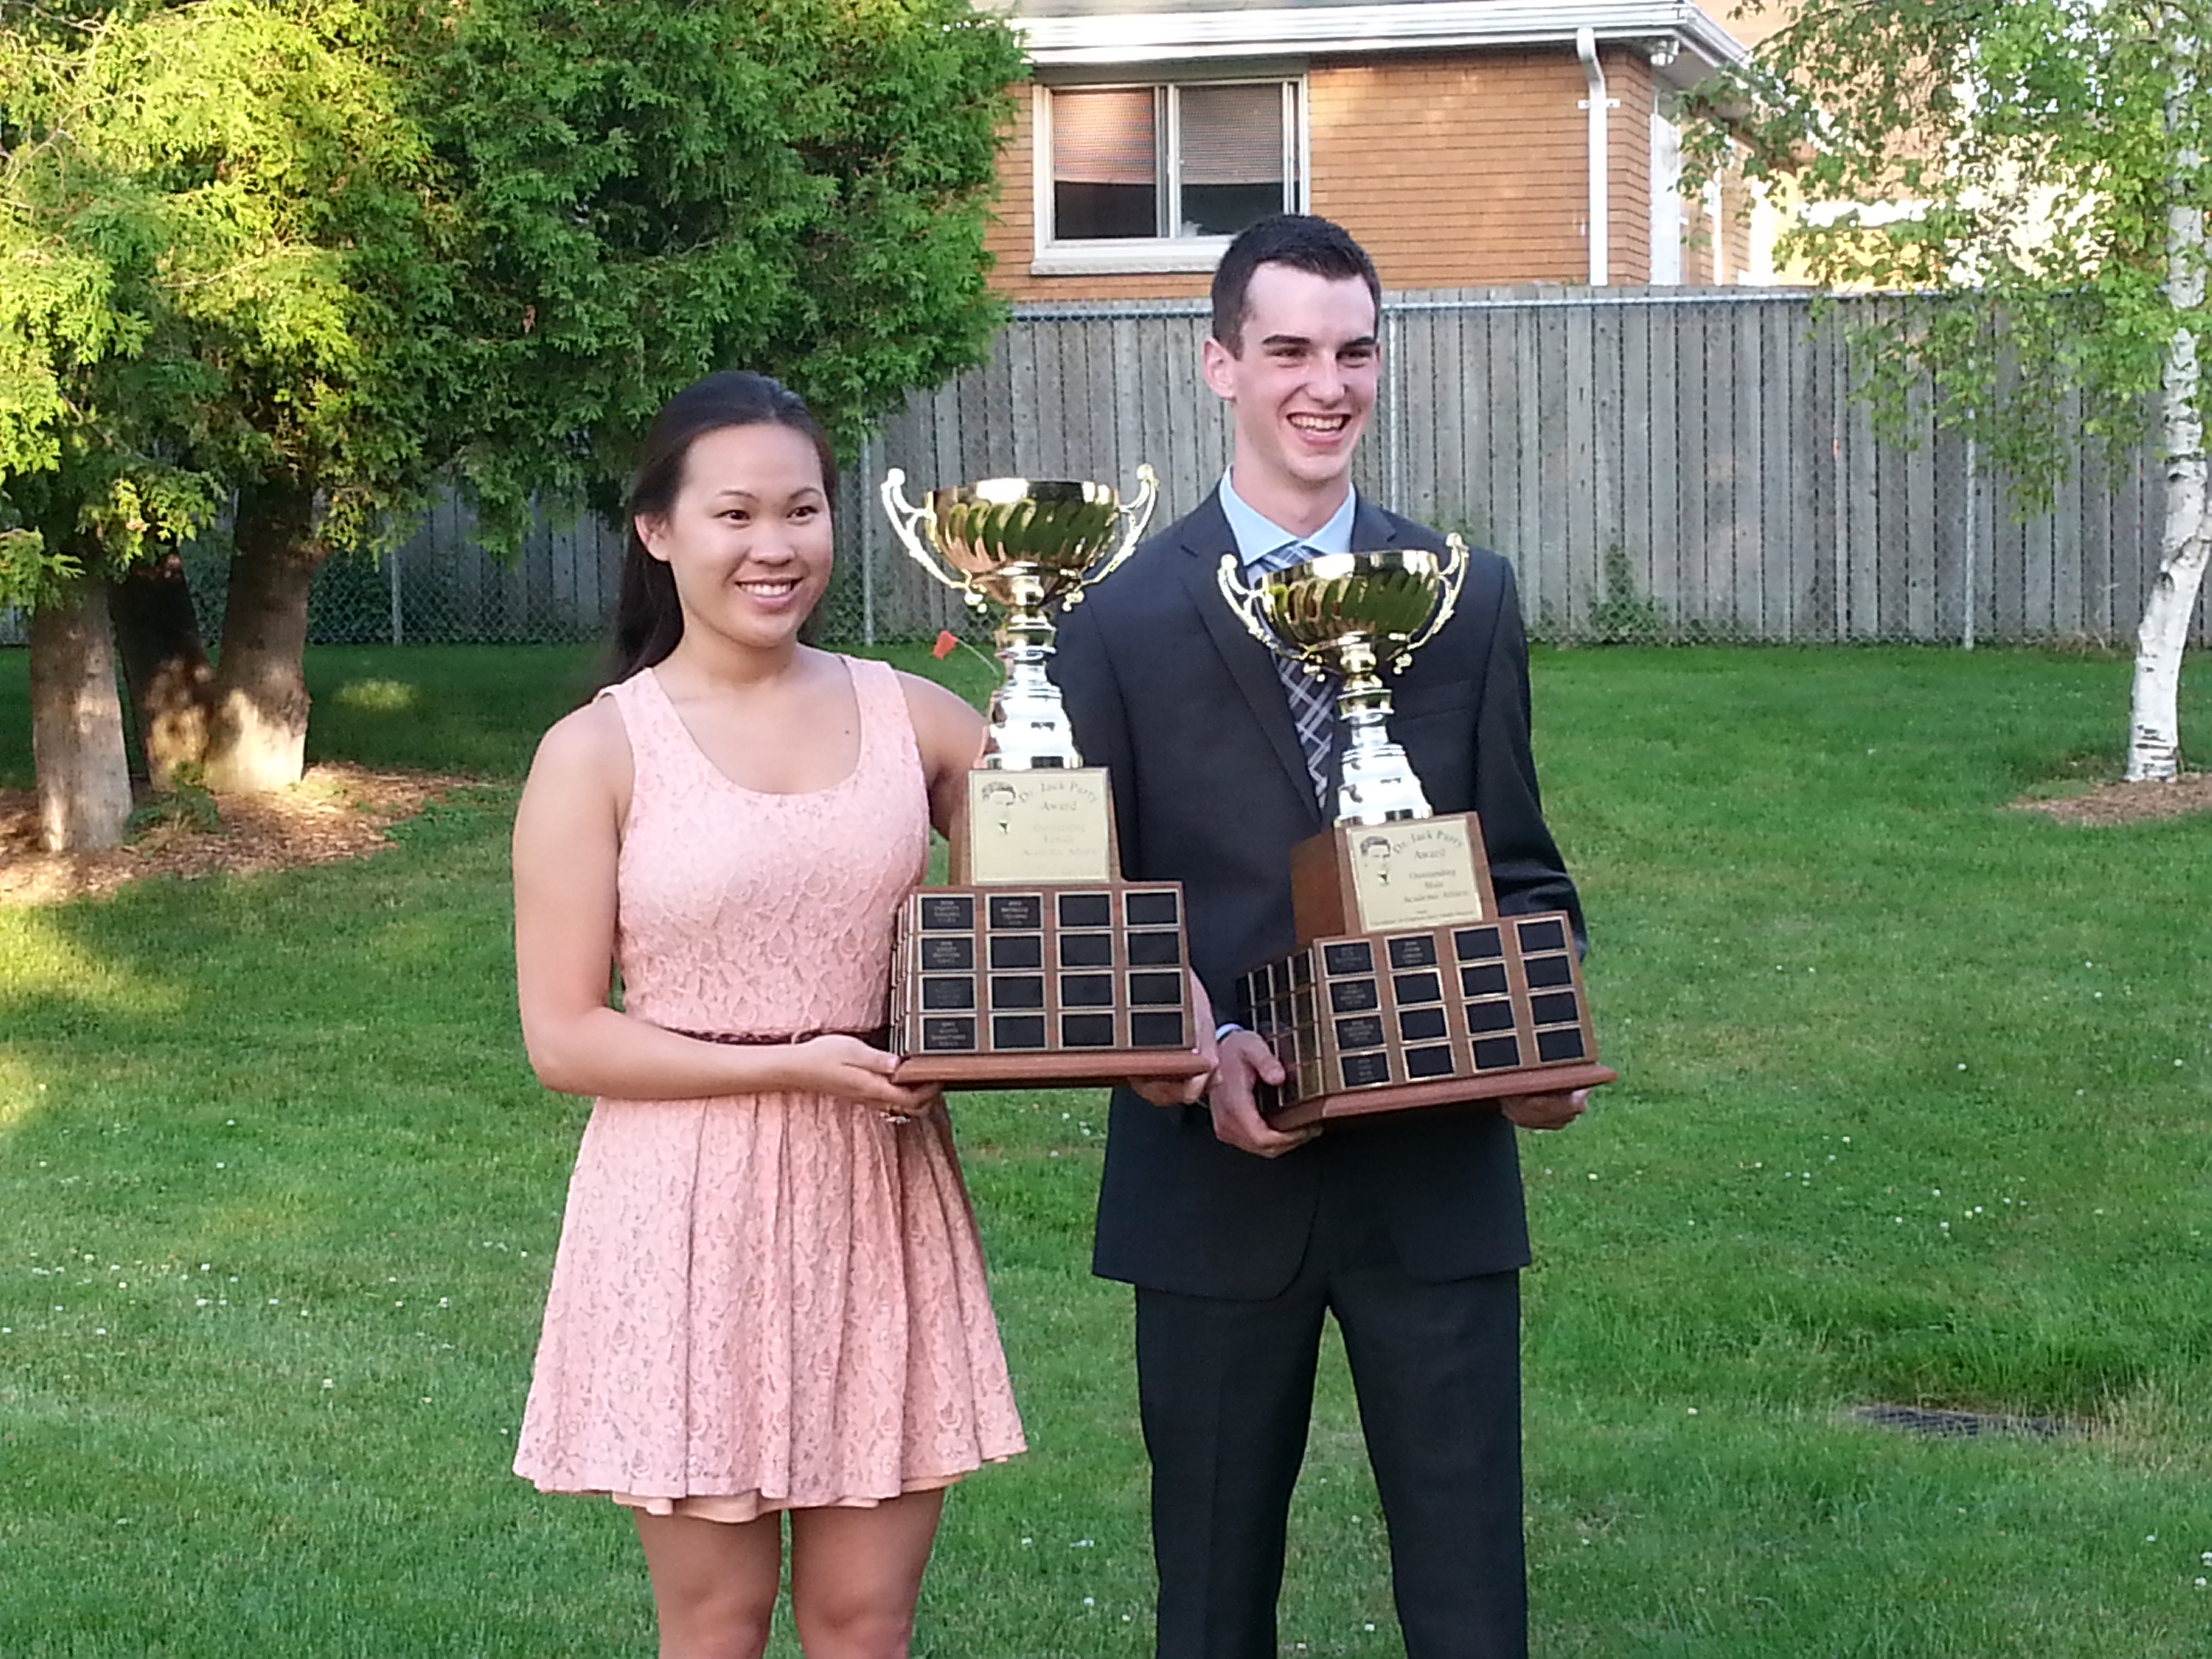 UCC's Michelle Truong & Jake Lindley of CKSS named the 2014 recipients of the Dr. Jack Parry Award. (Photo by Cheryl Johnstone)